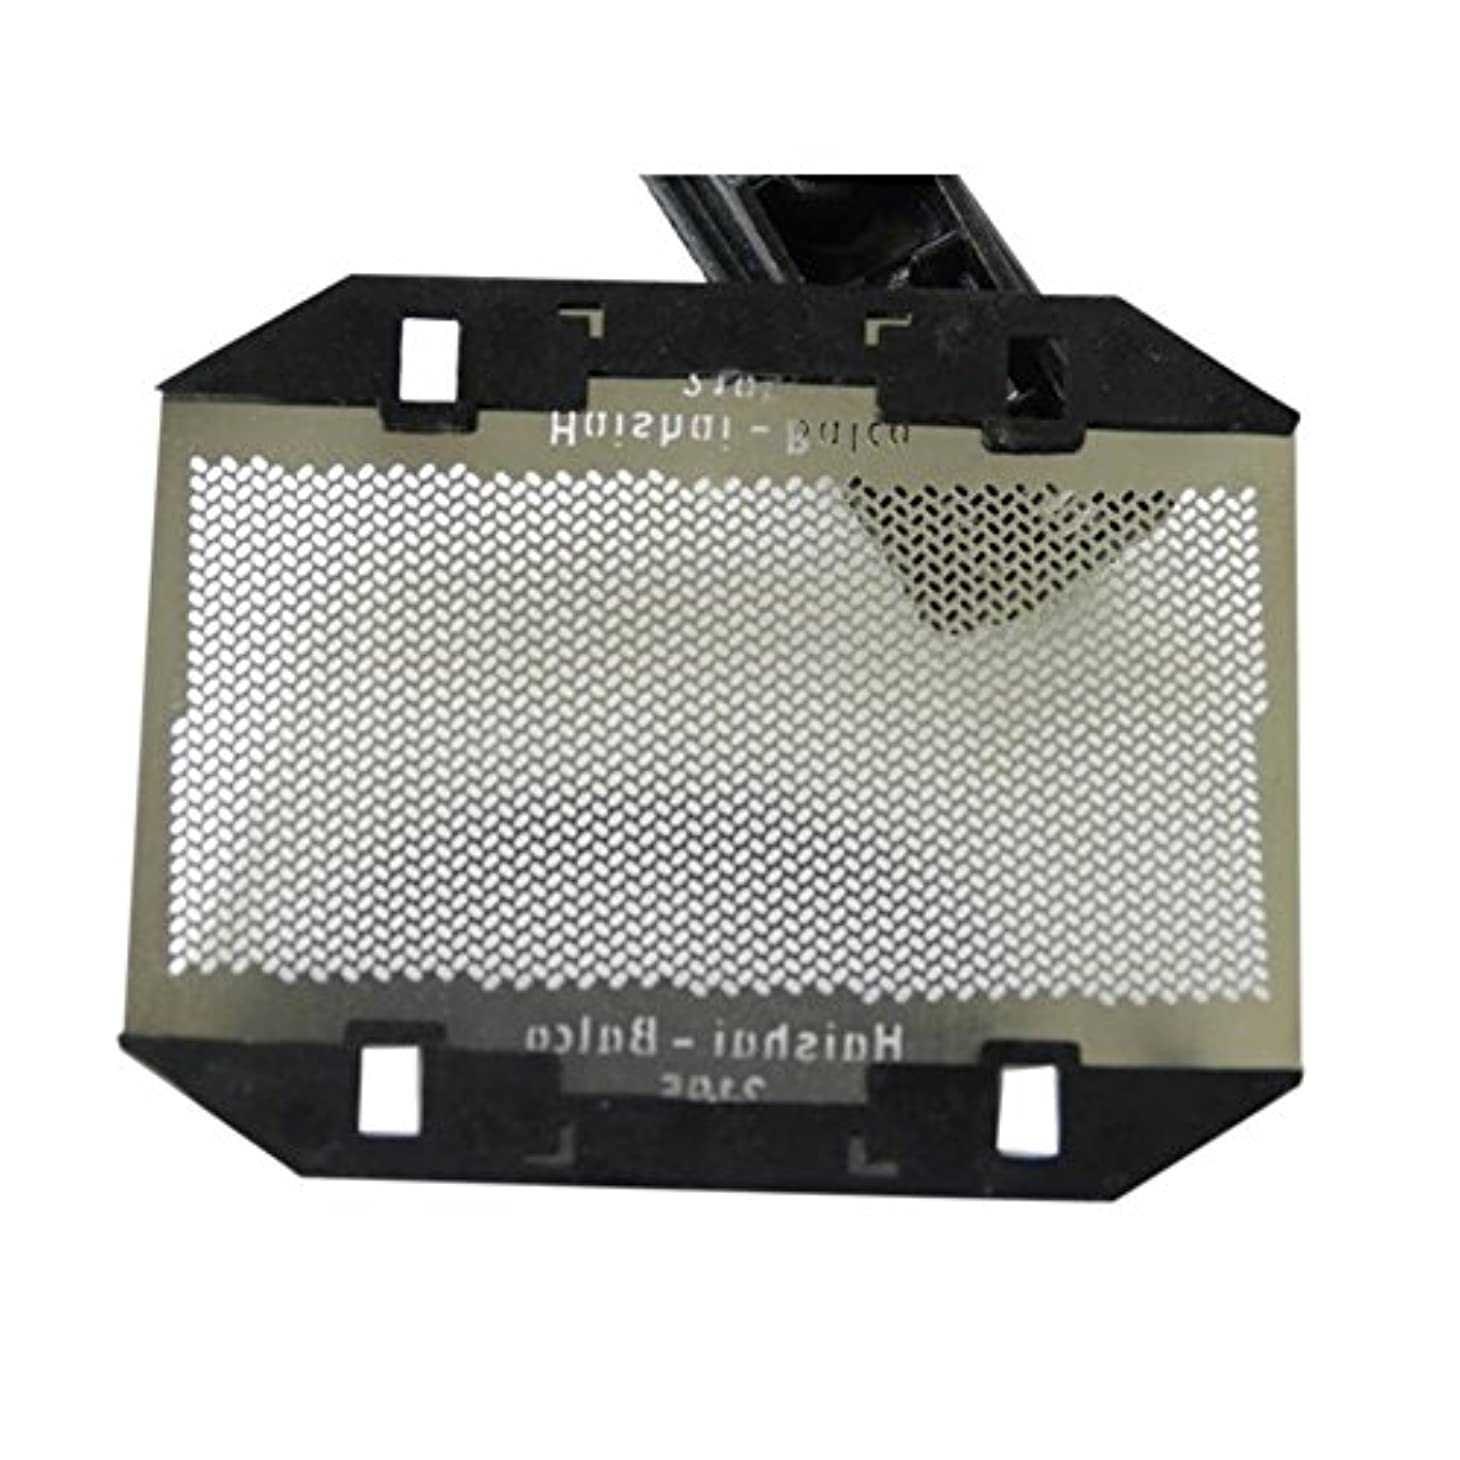 ポット痛いフェンスHZjundasi Replacement Outer ホイル for Panasonic ESRC30 ESRP20 ES9943